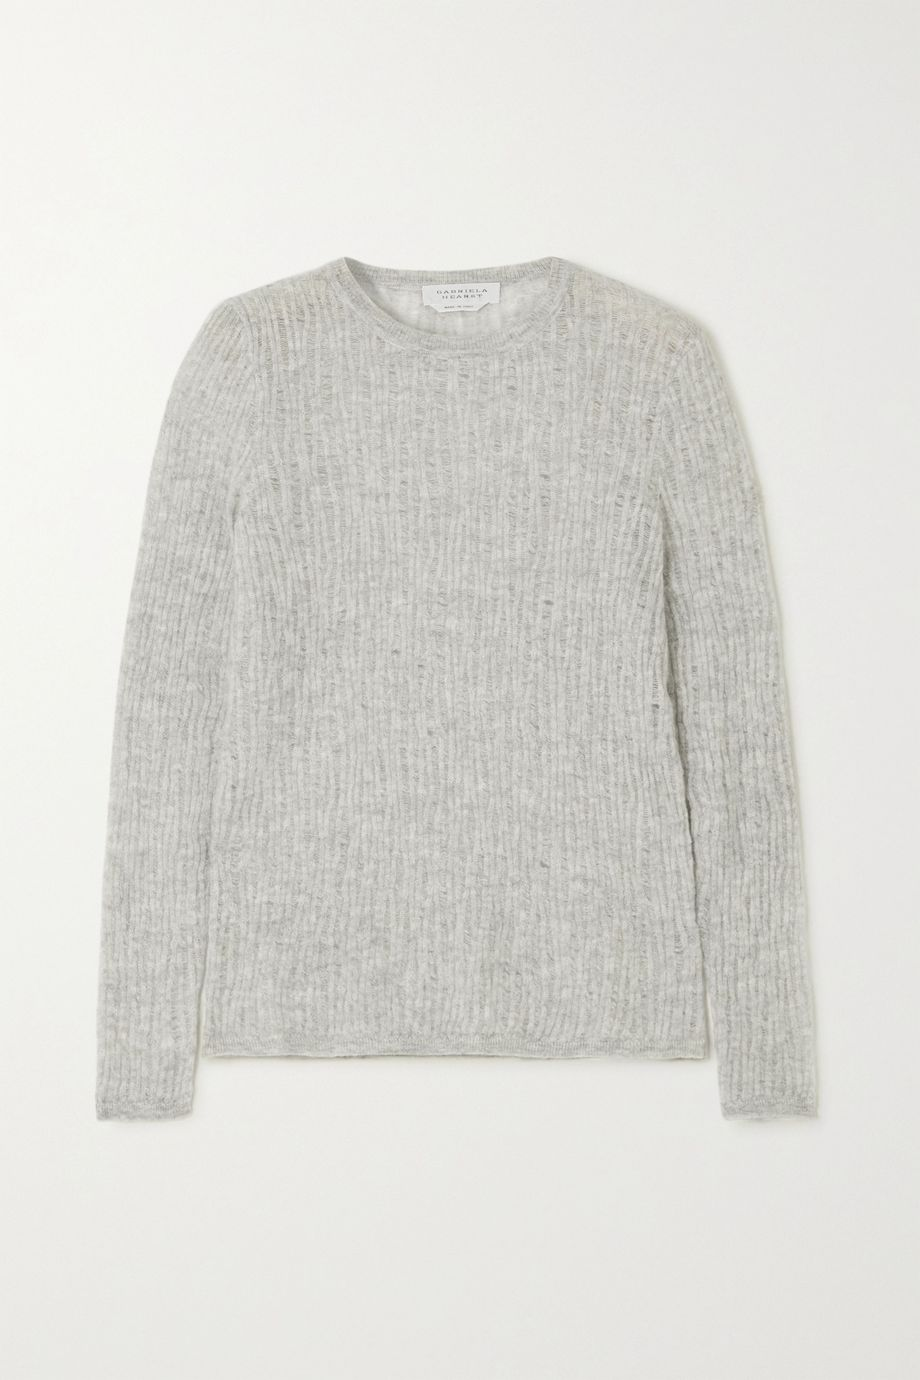 Gabriela Hearst Carey open-knit cashmere and silk-blend sweater